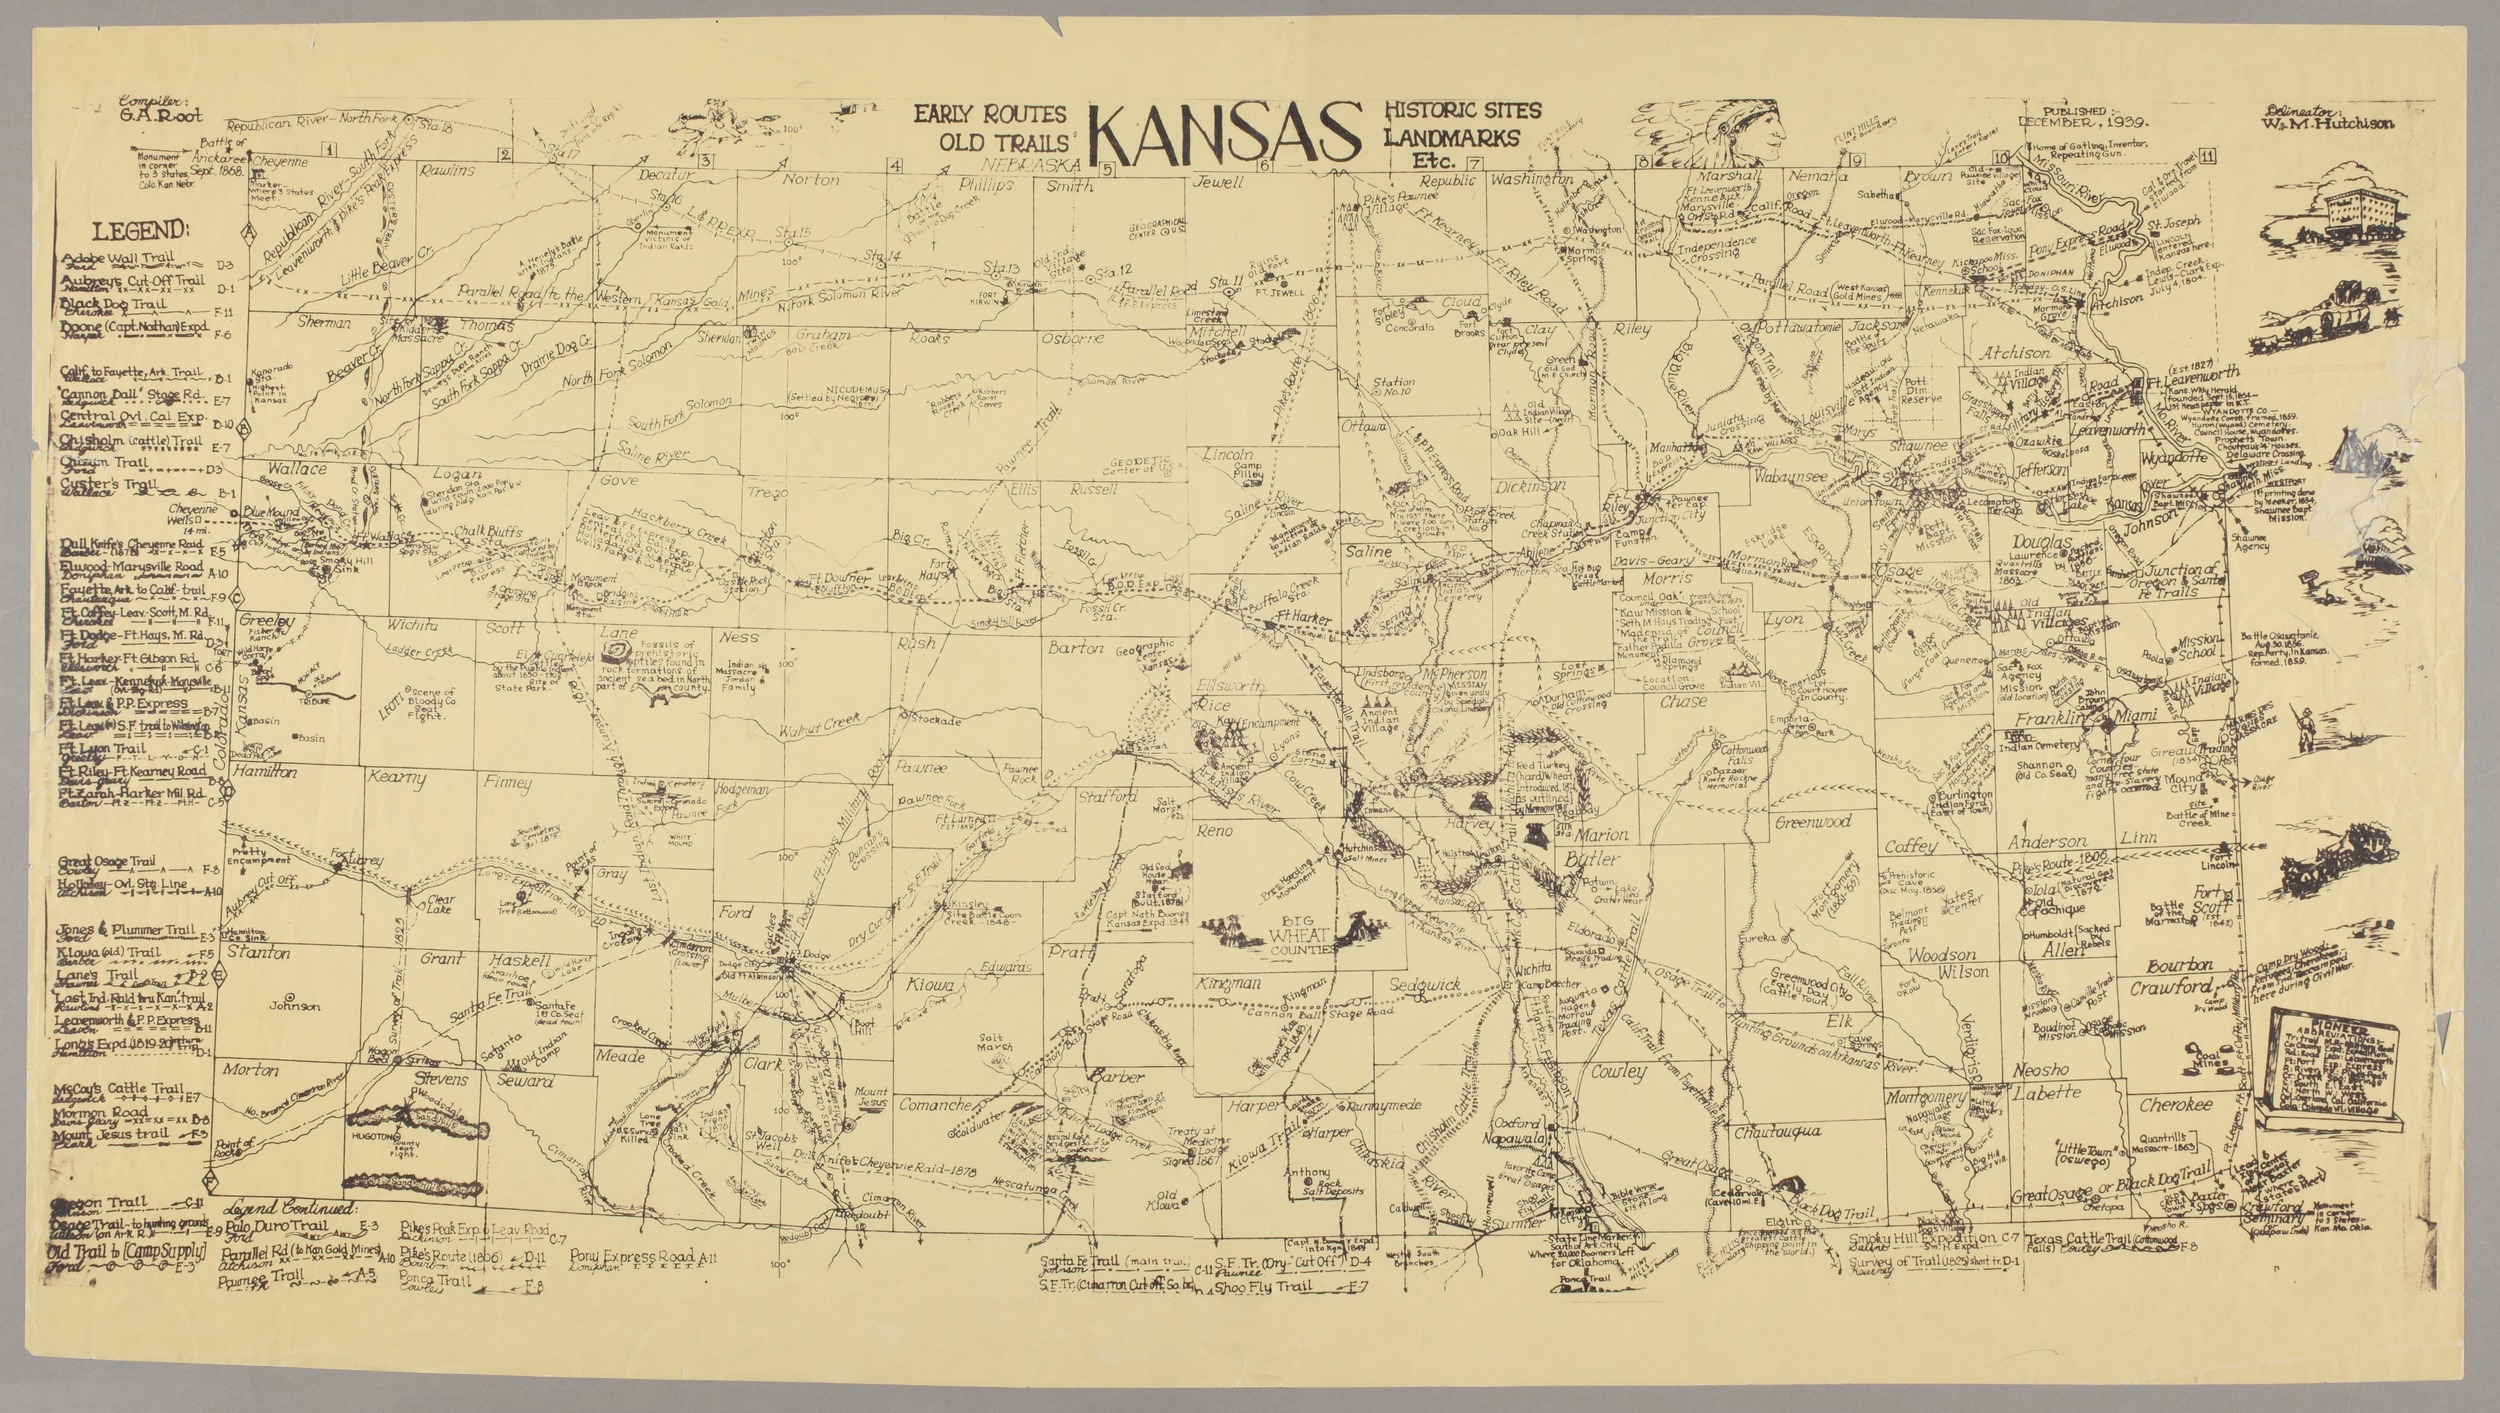 Old Kansas Map.Kansas Early Routes Old Trails Historic Sites Landmarks Etc